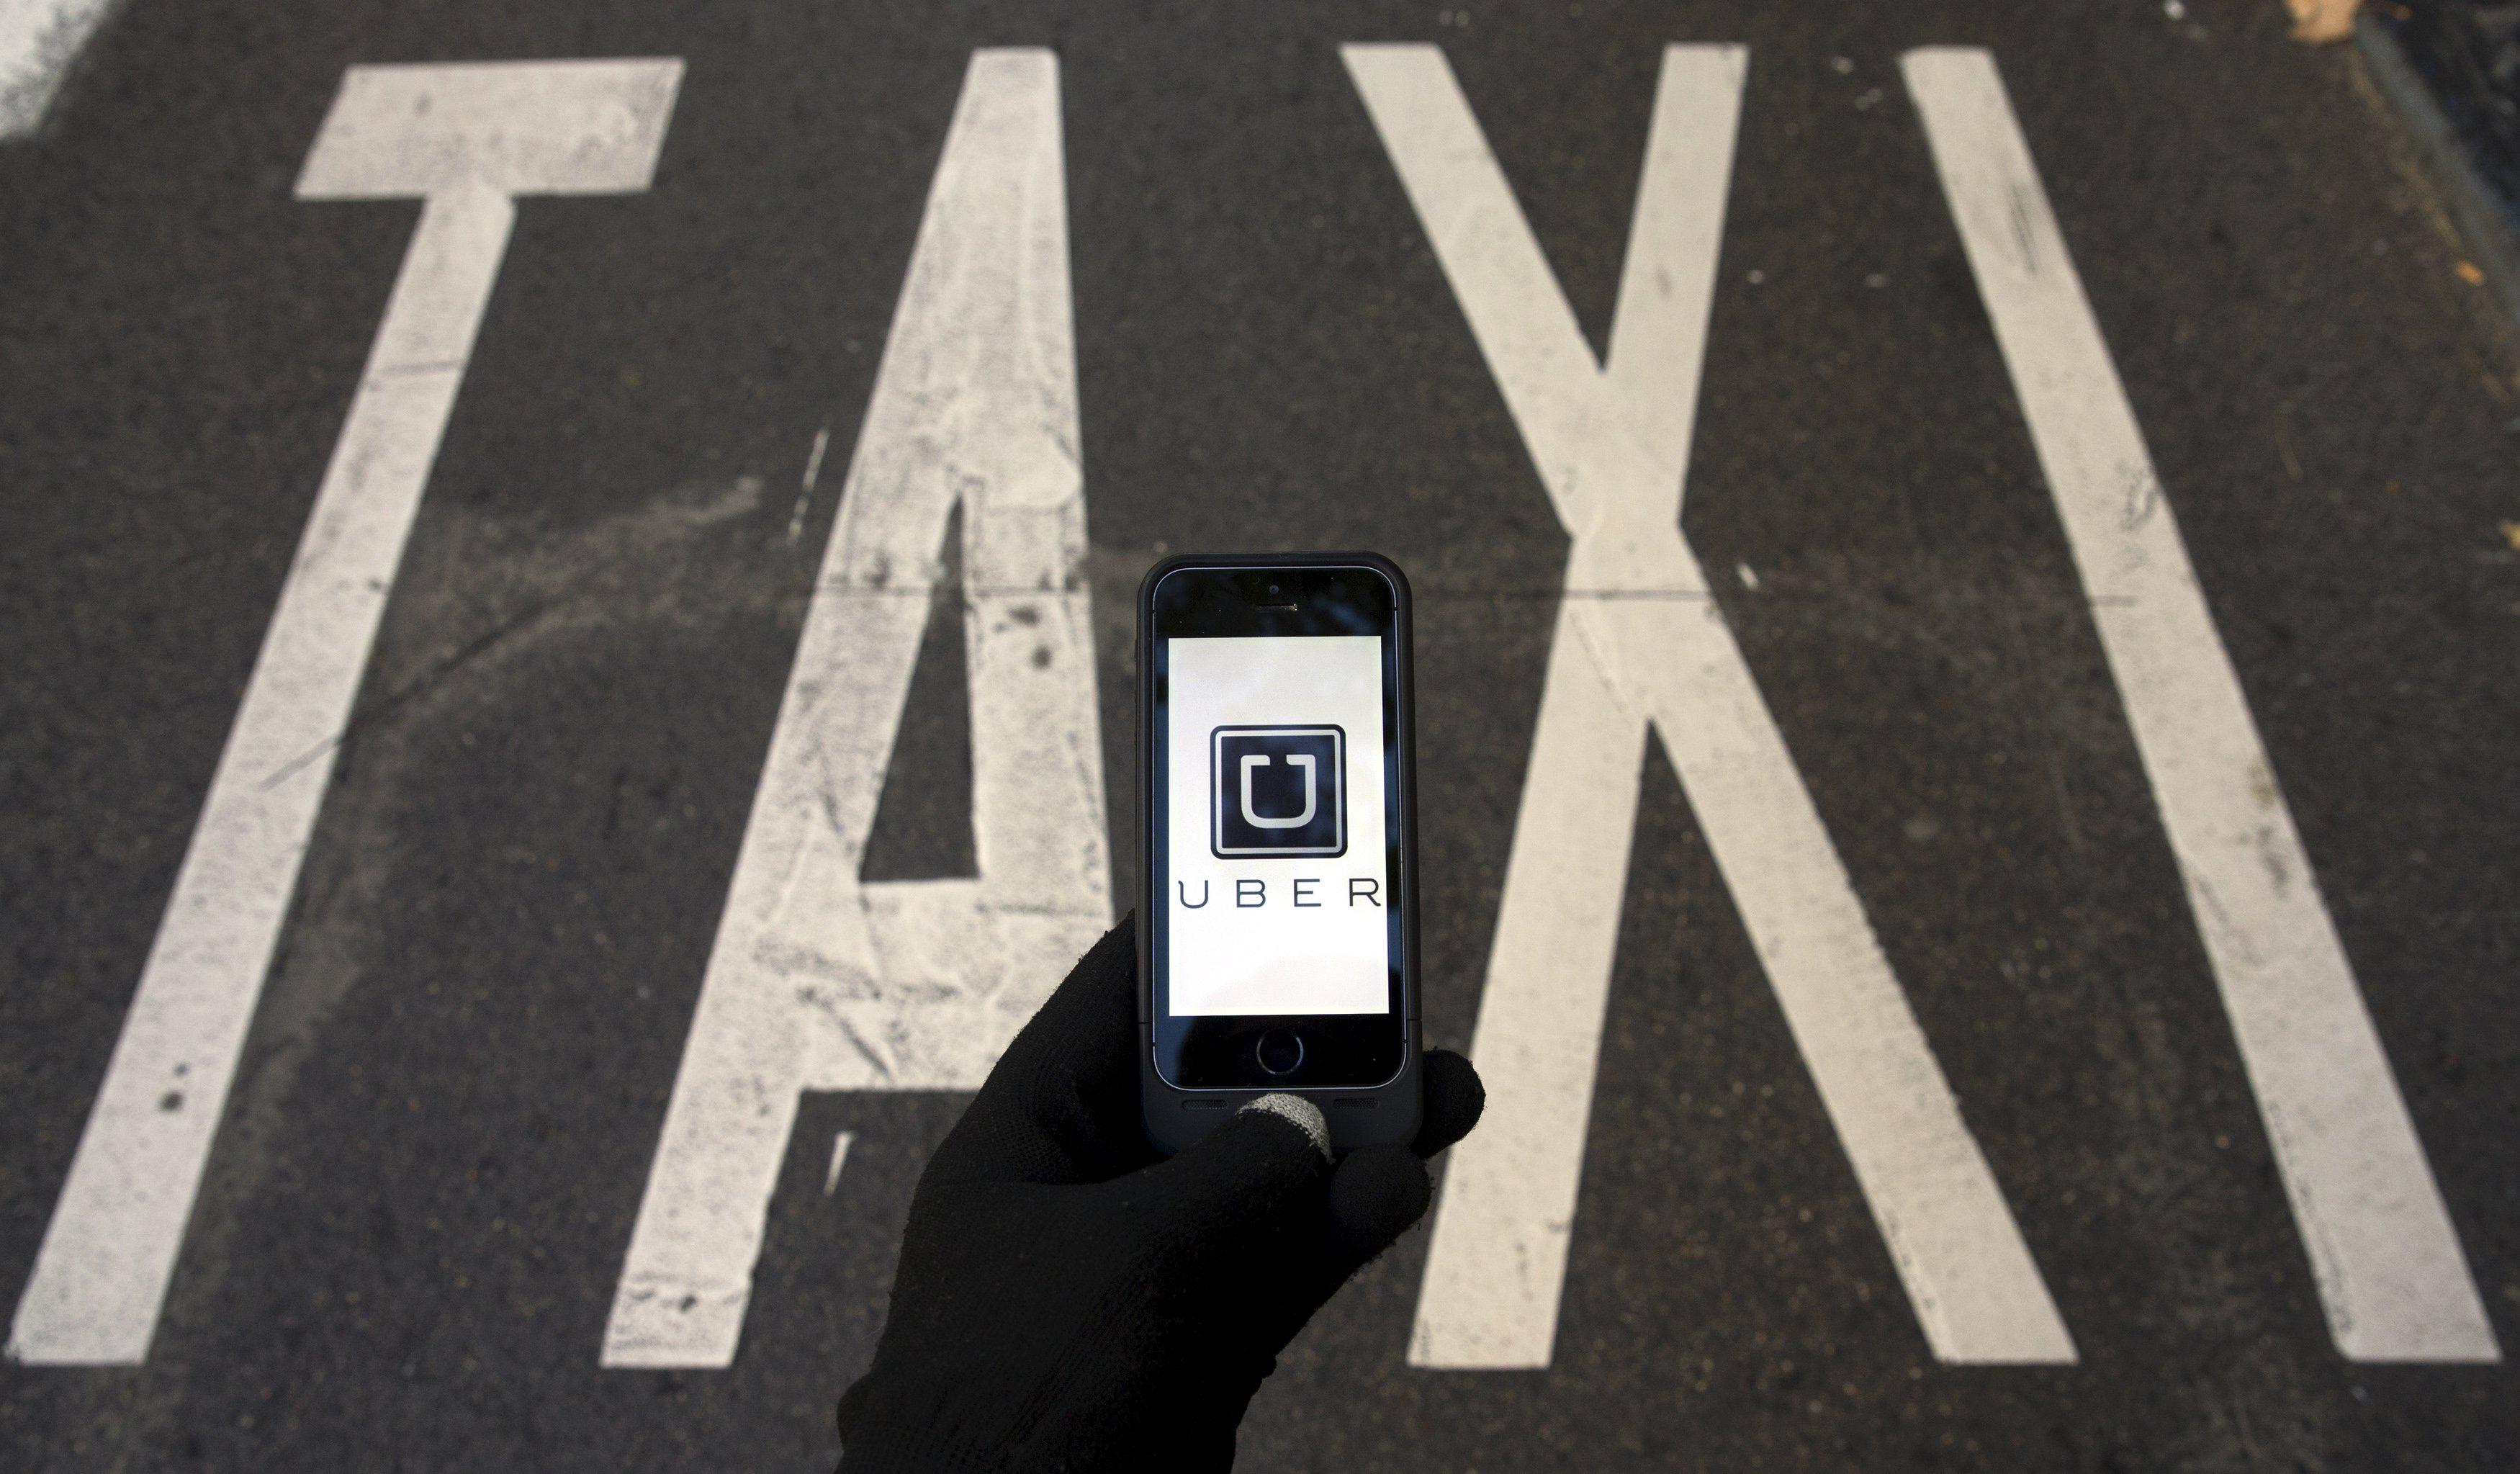 File photo of the logo of car-sharing service app Uber on a smartphone over a reserved lane for taxis in a street in Madrid